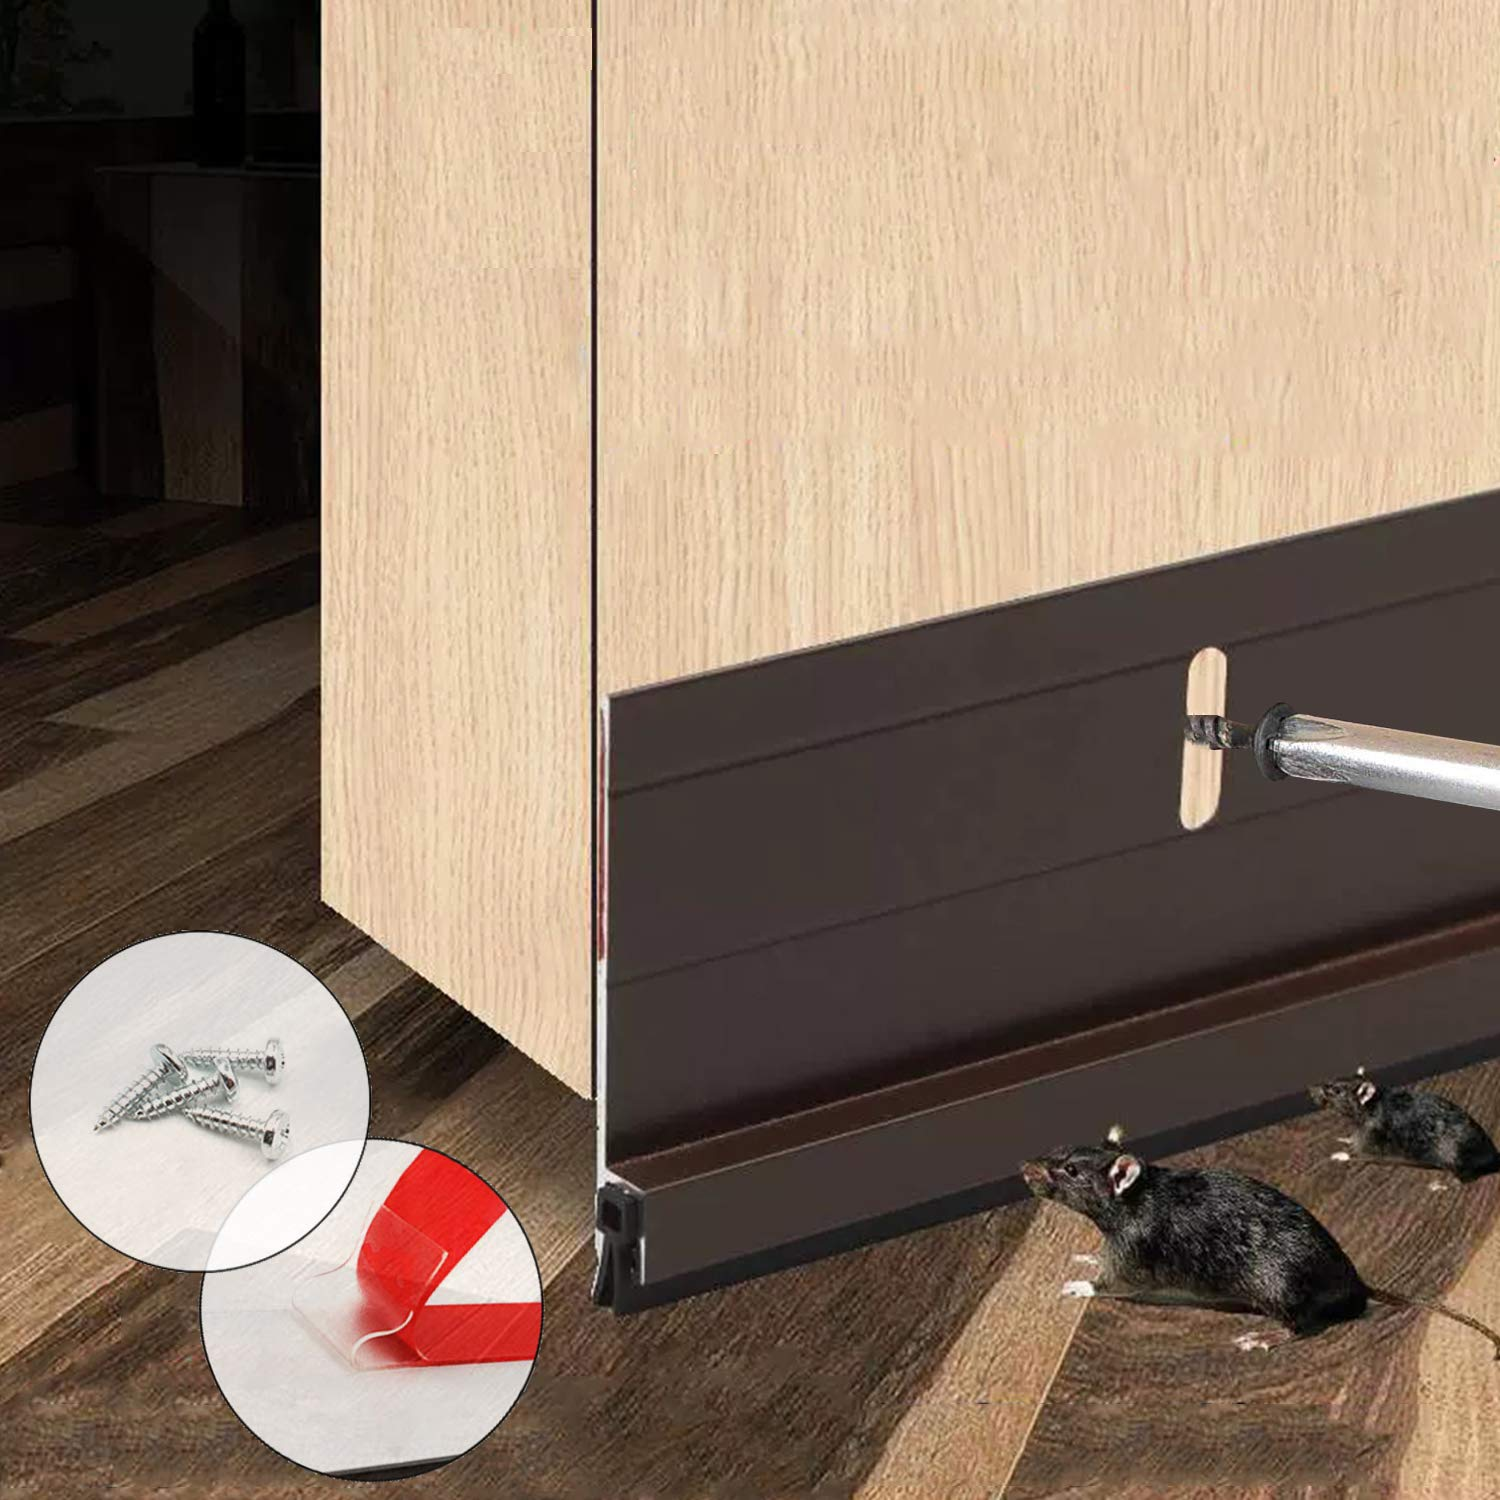 BAINING Heavy Duty Door Draft Stopper, Under Door Sweep Bottom Seal Strip, Made of Aluminium Anti Mouse Bite 2'' W x 36.5'' L, Brown by BAINING